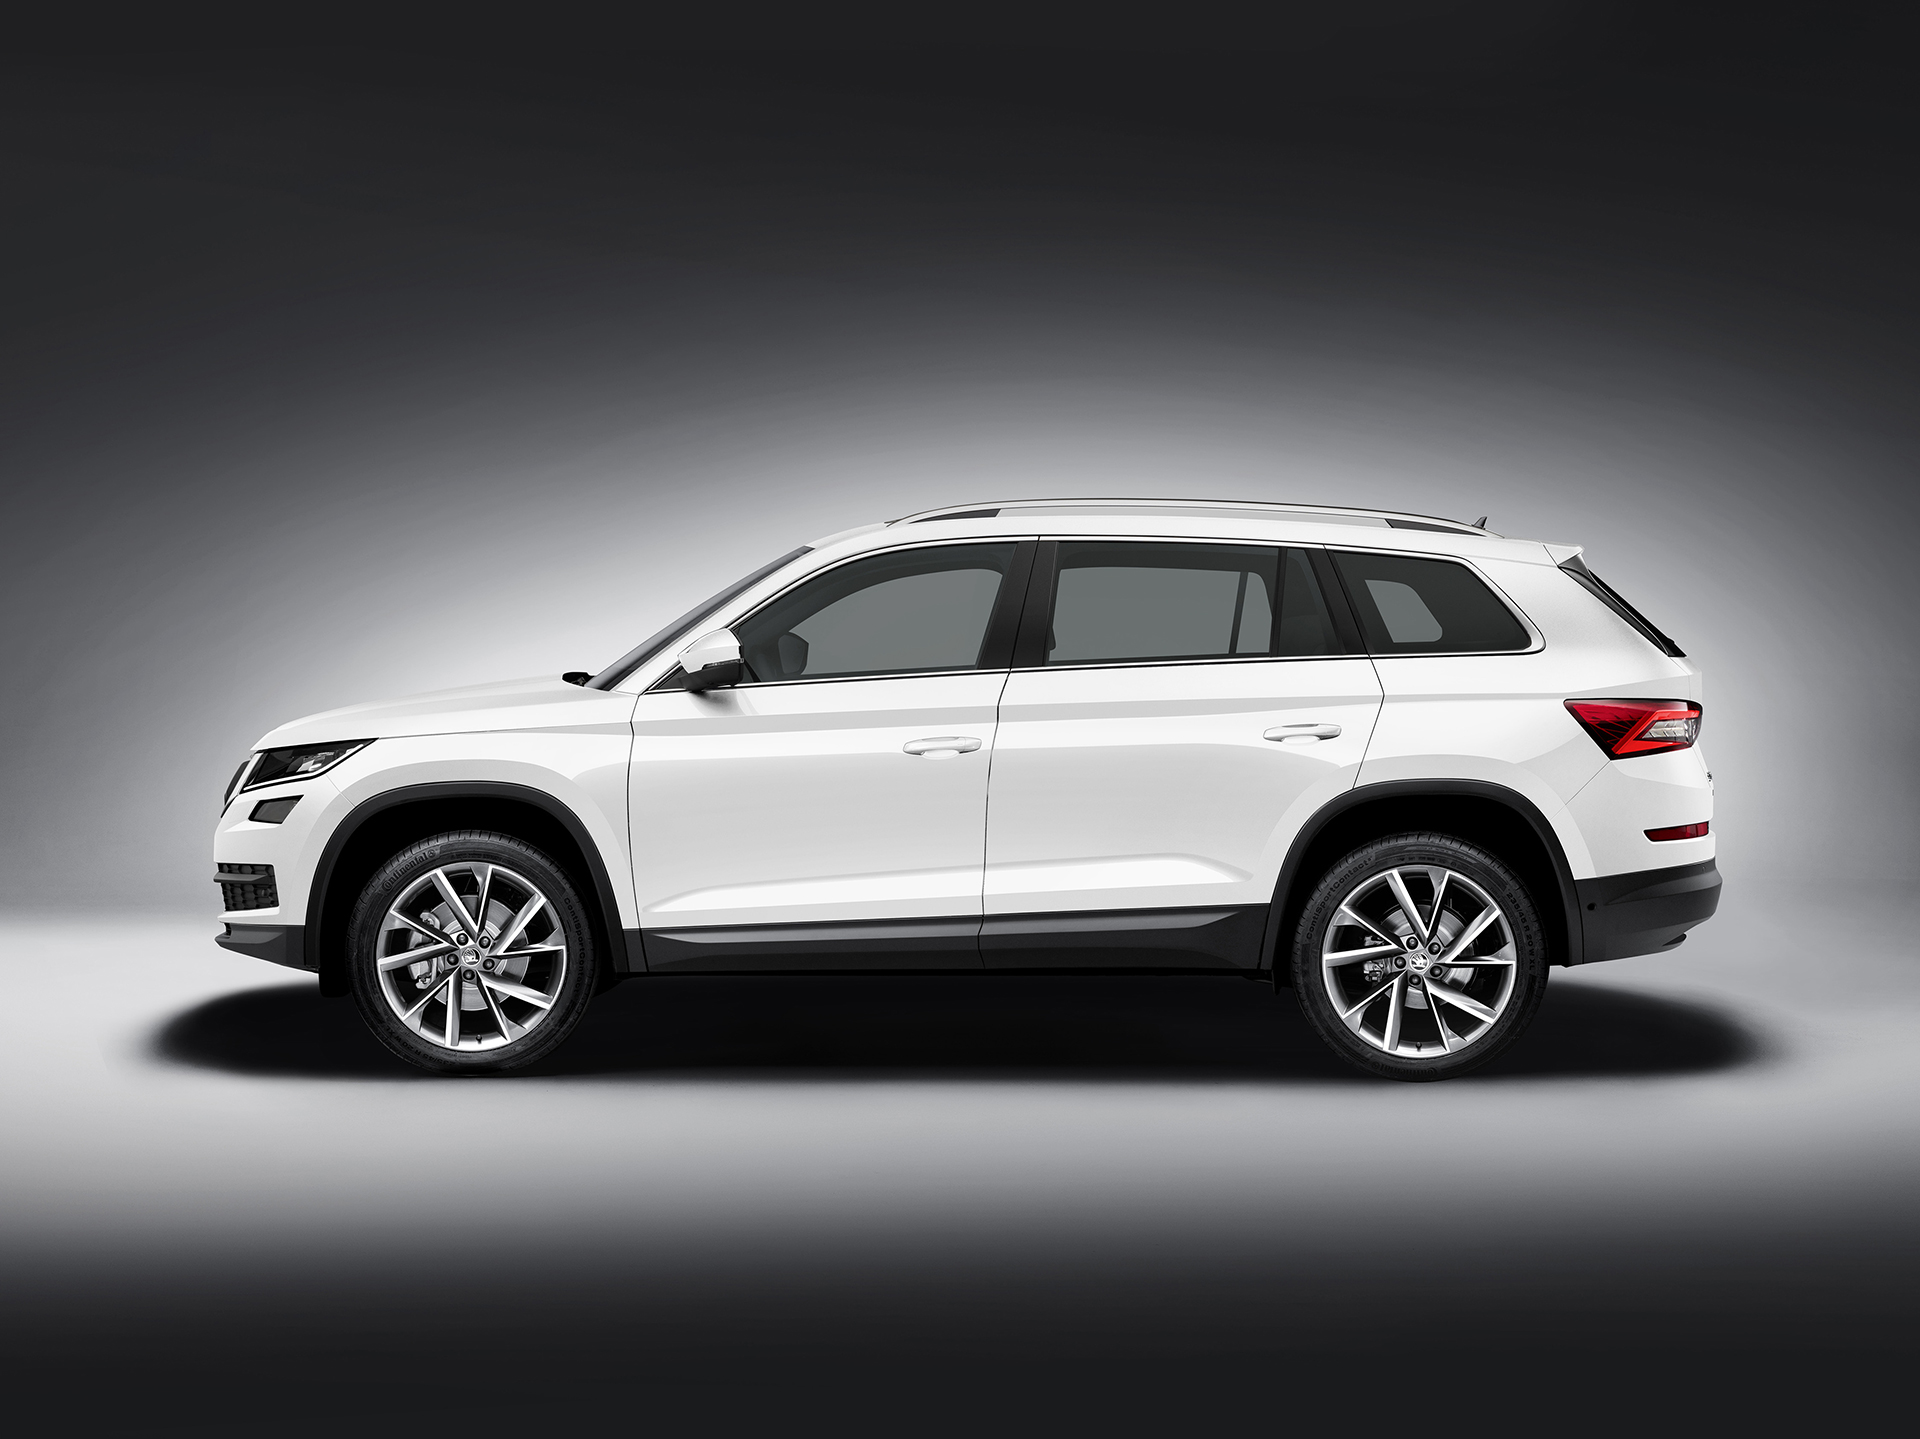 Skoda Kodiaq - 2016 - side-face / profil